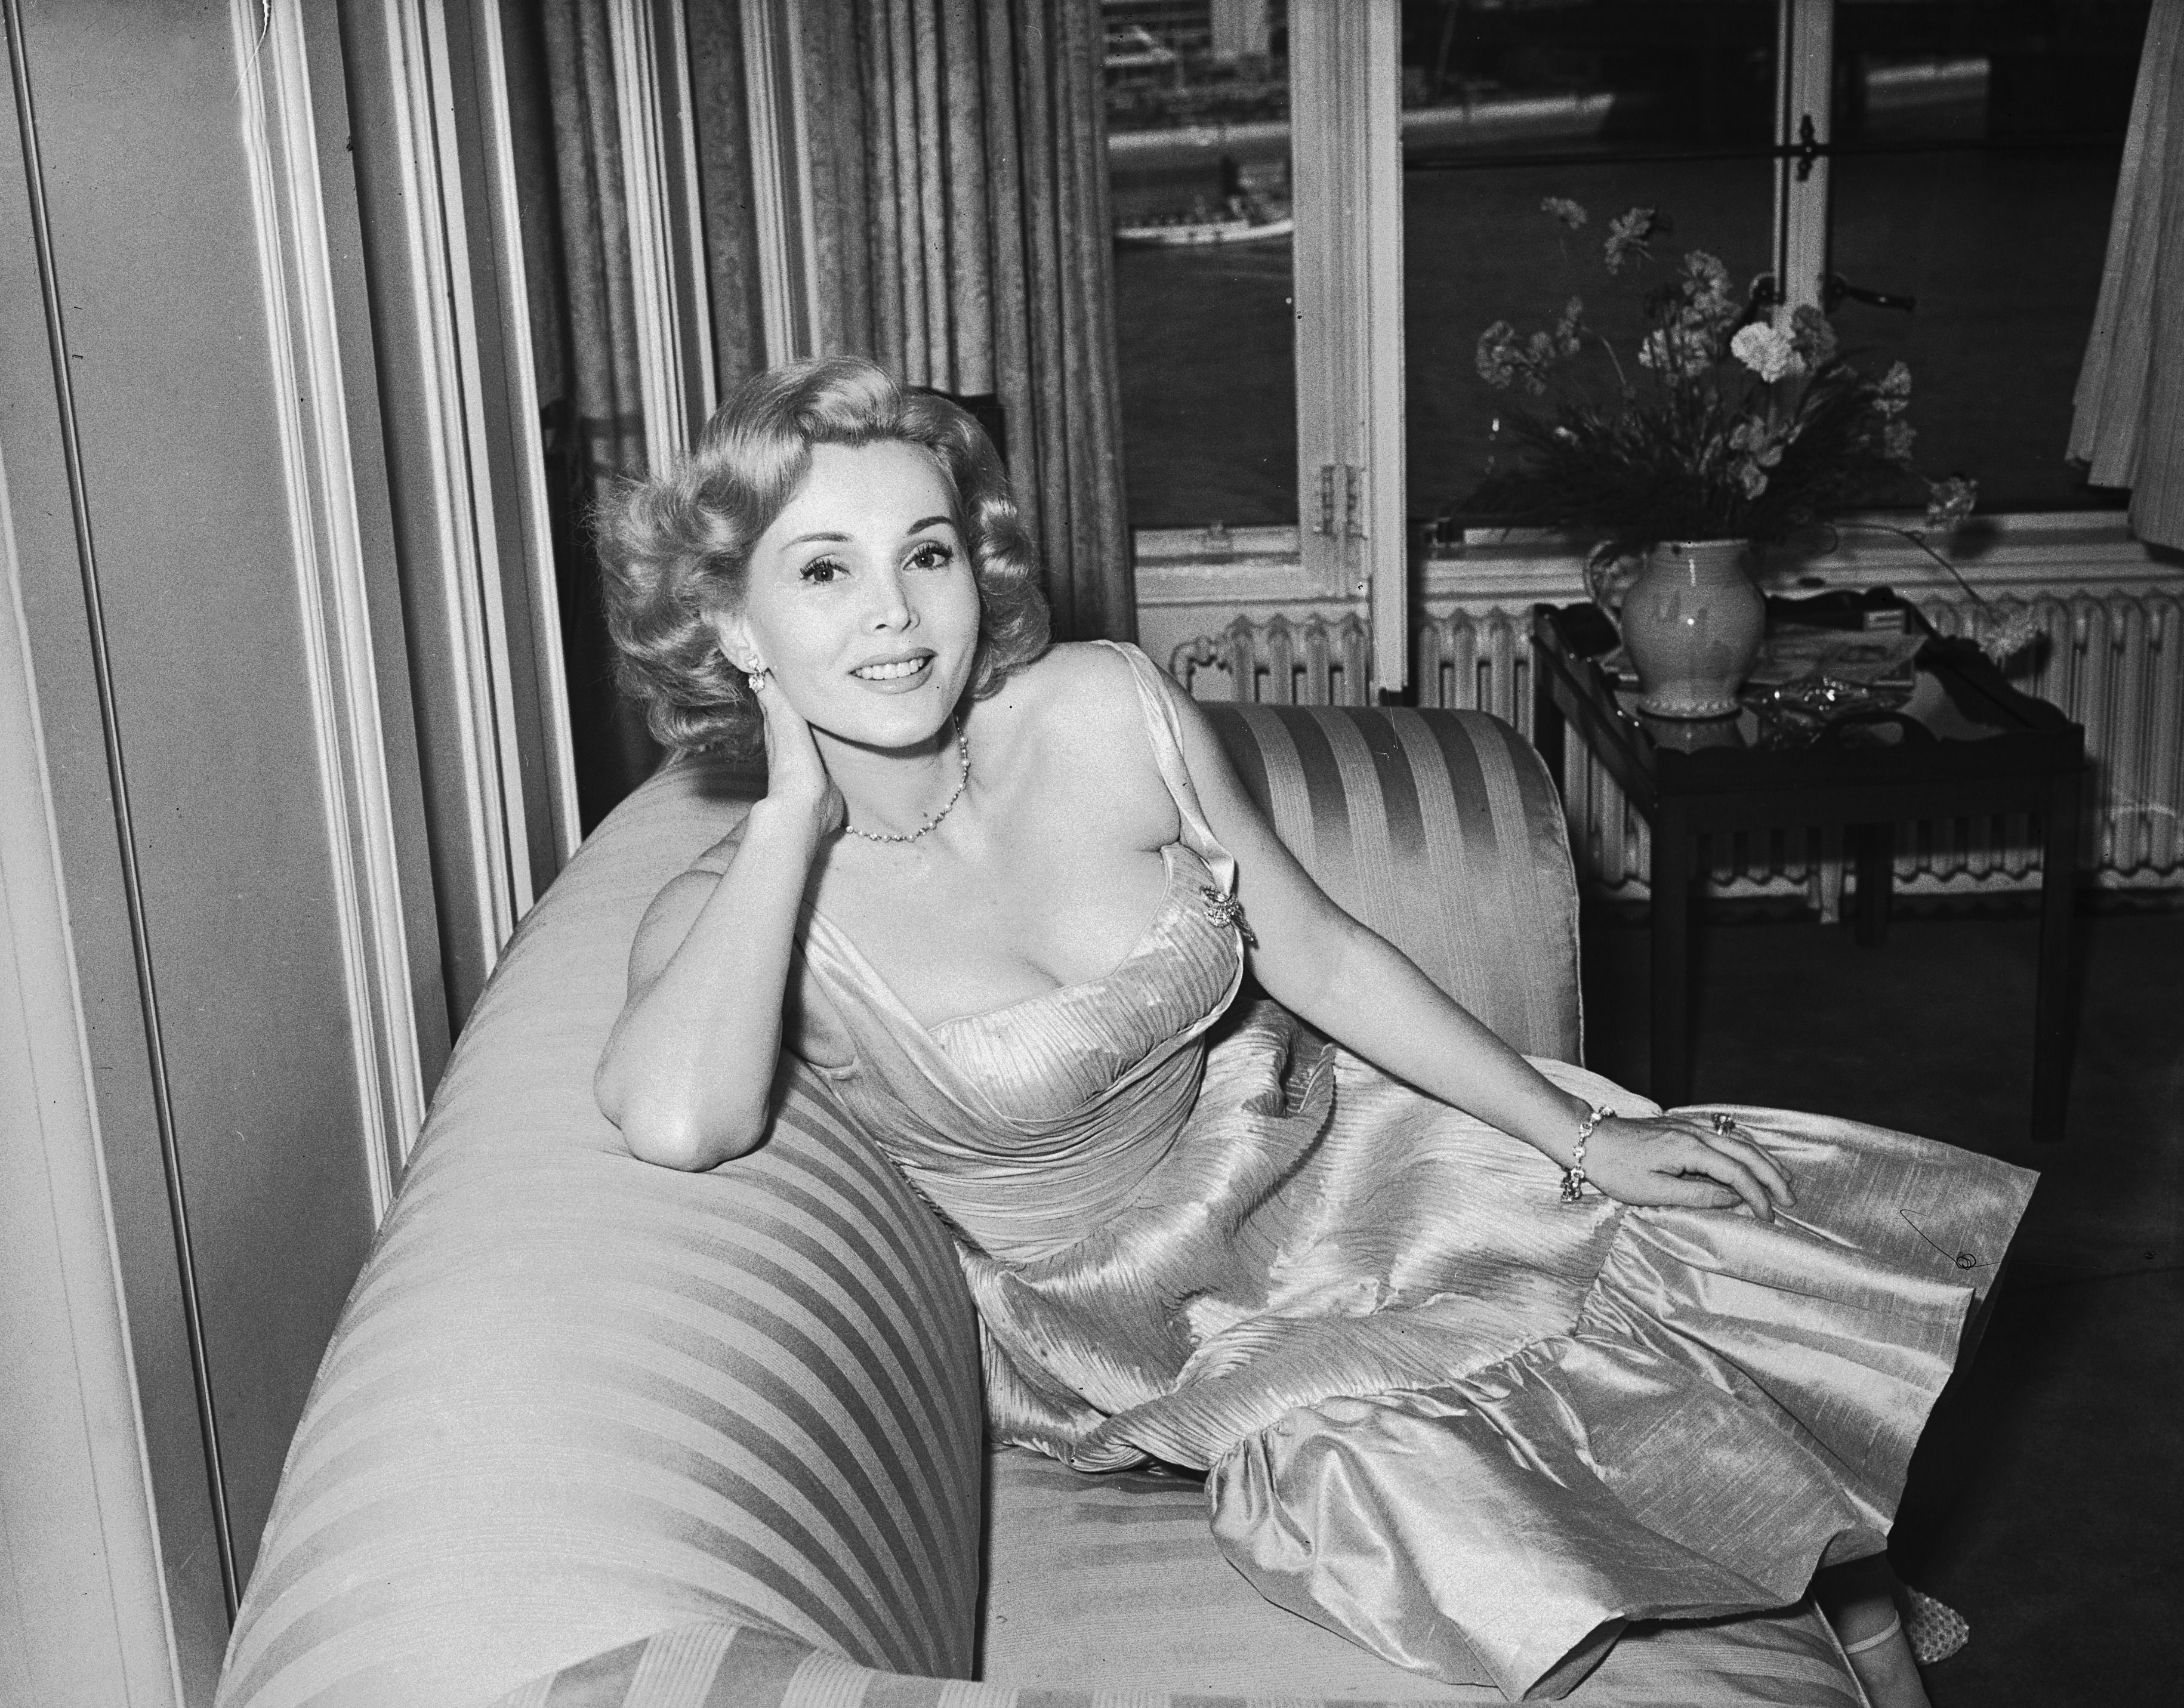 Zsa Zsa Gabor, self-made woman.